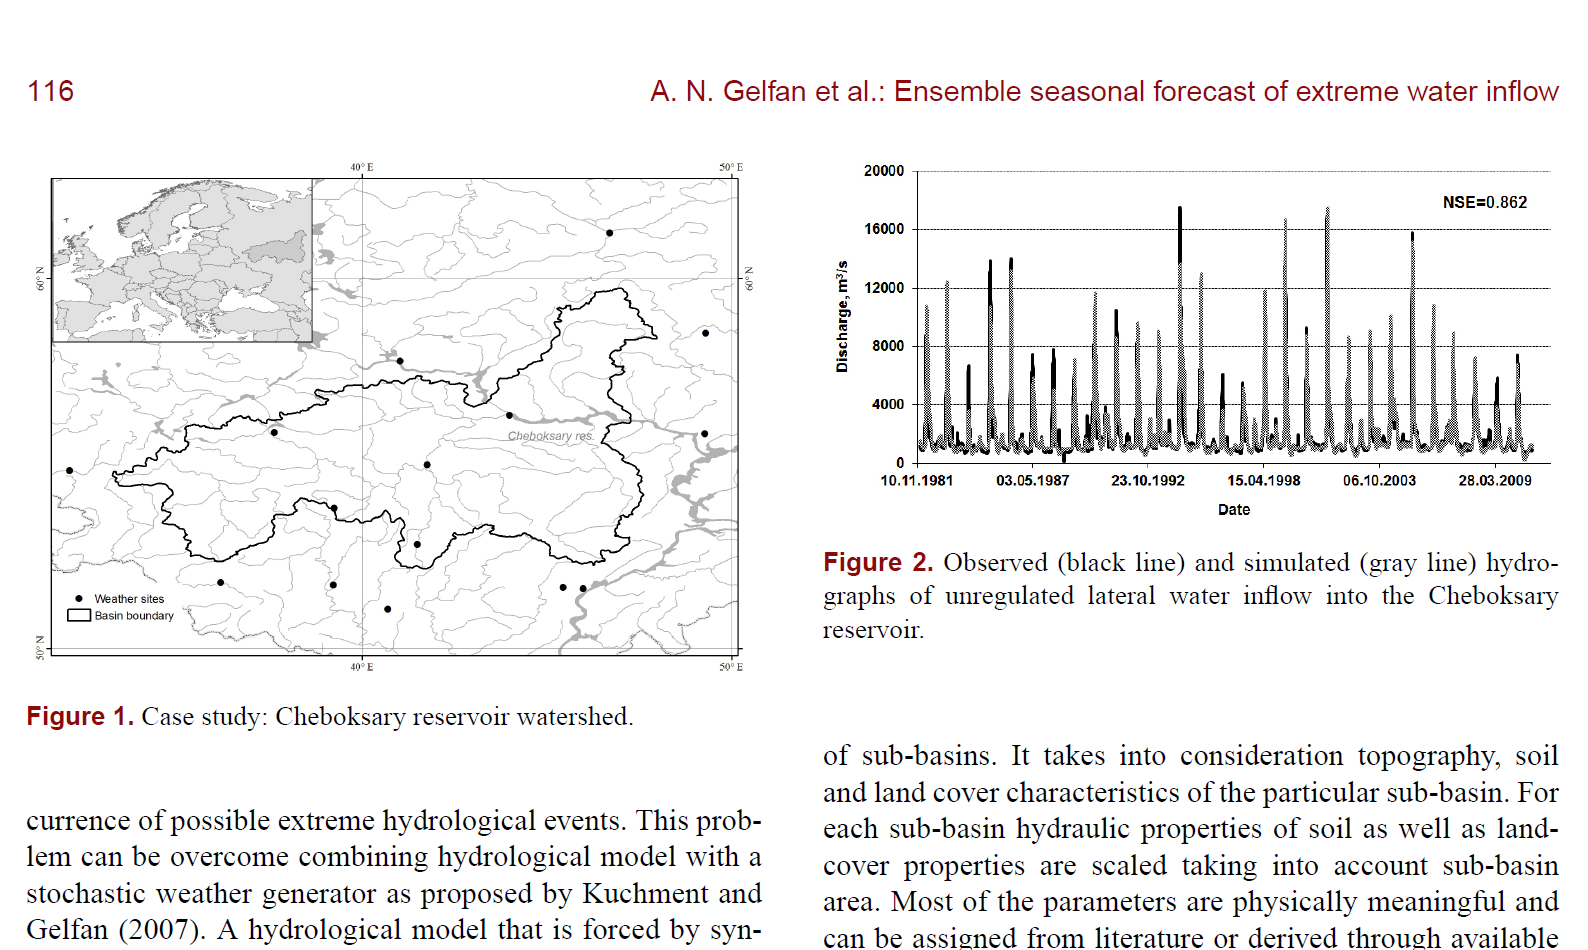 Ensemble seasonal forecast of extreme water inflow into a large reservoir